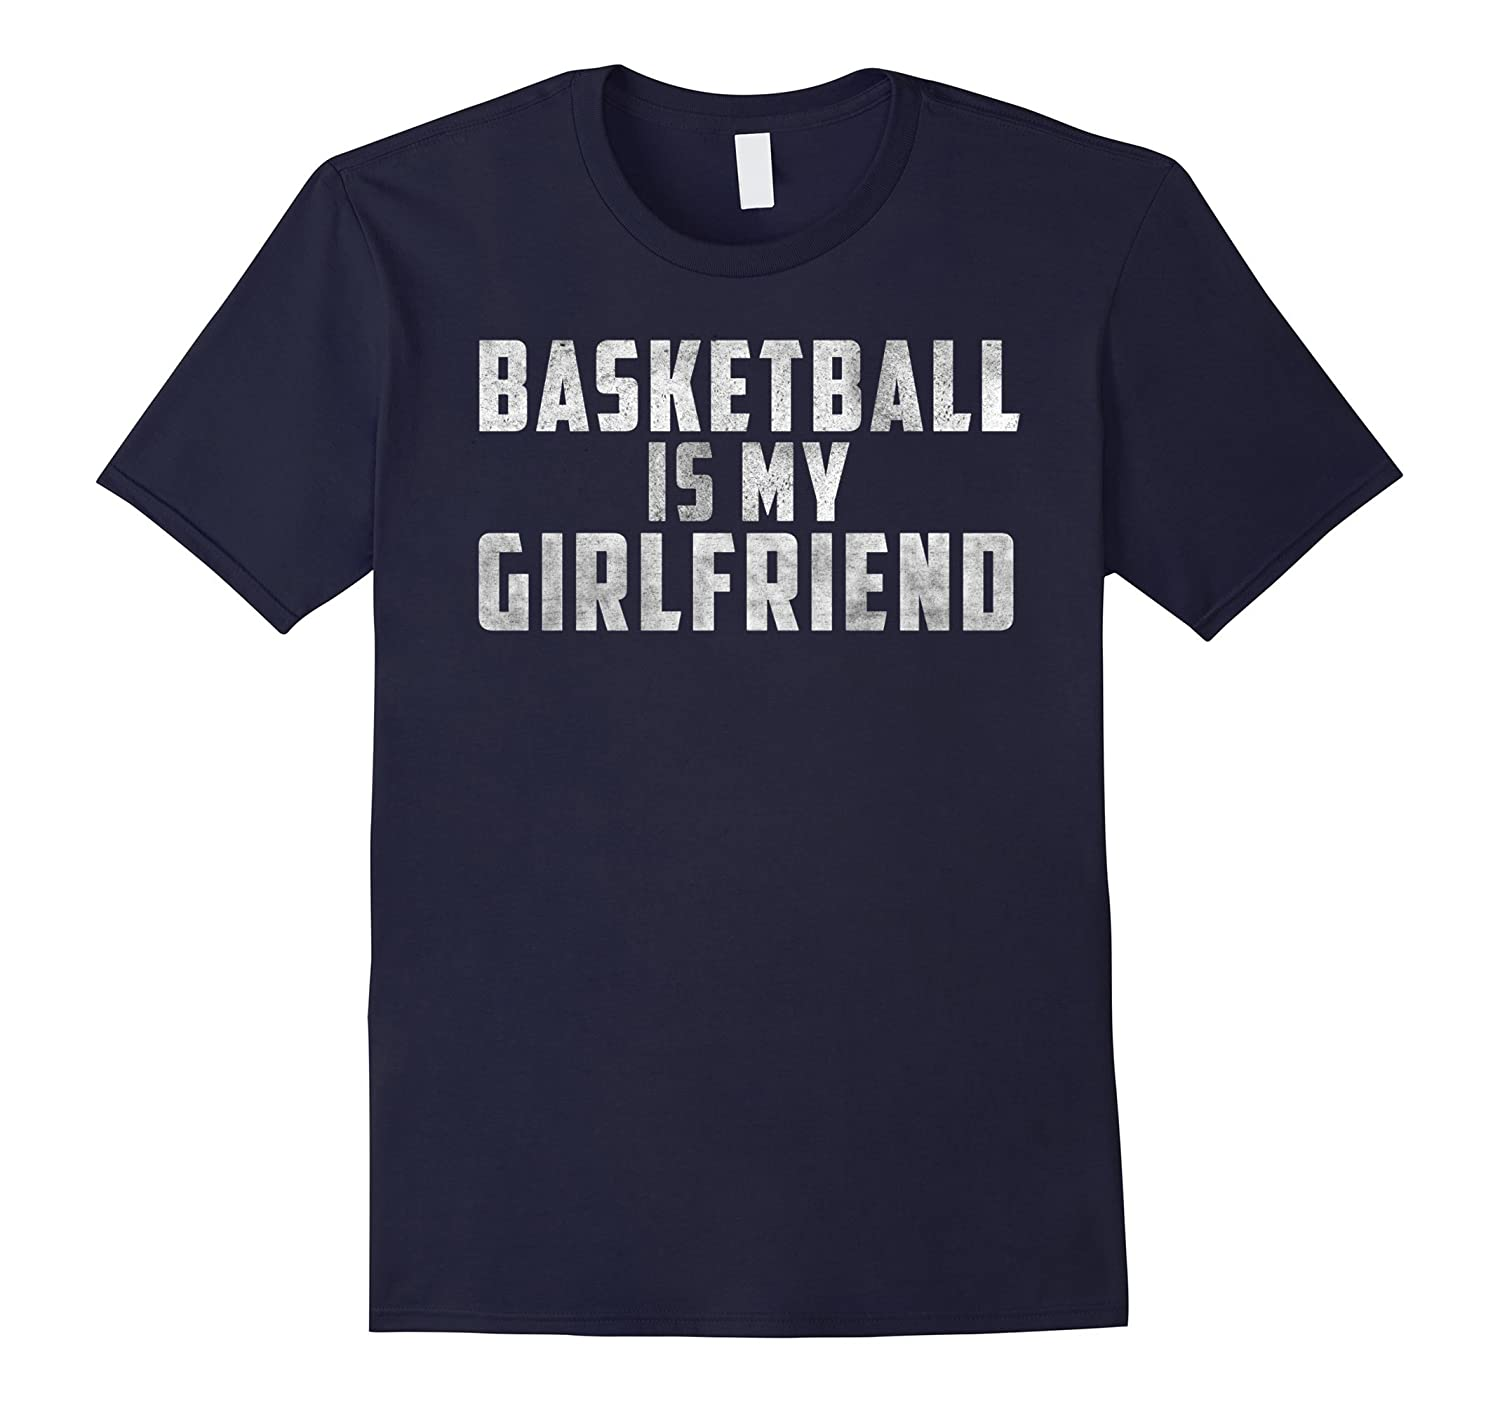 BASKETBALL IS MY GIRLFRIEND T SHIRT - DISTRESSED DESIGN-BN